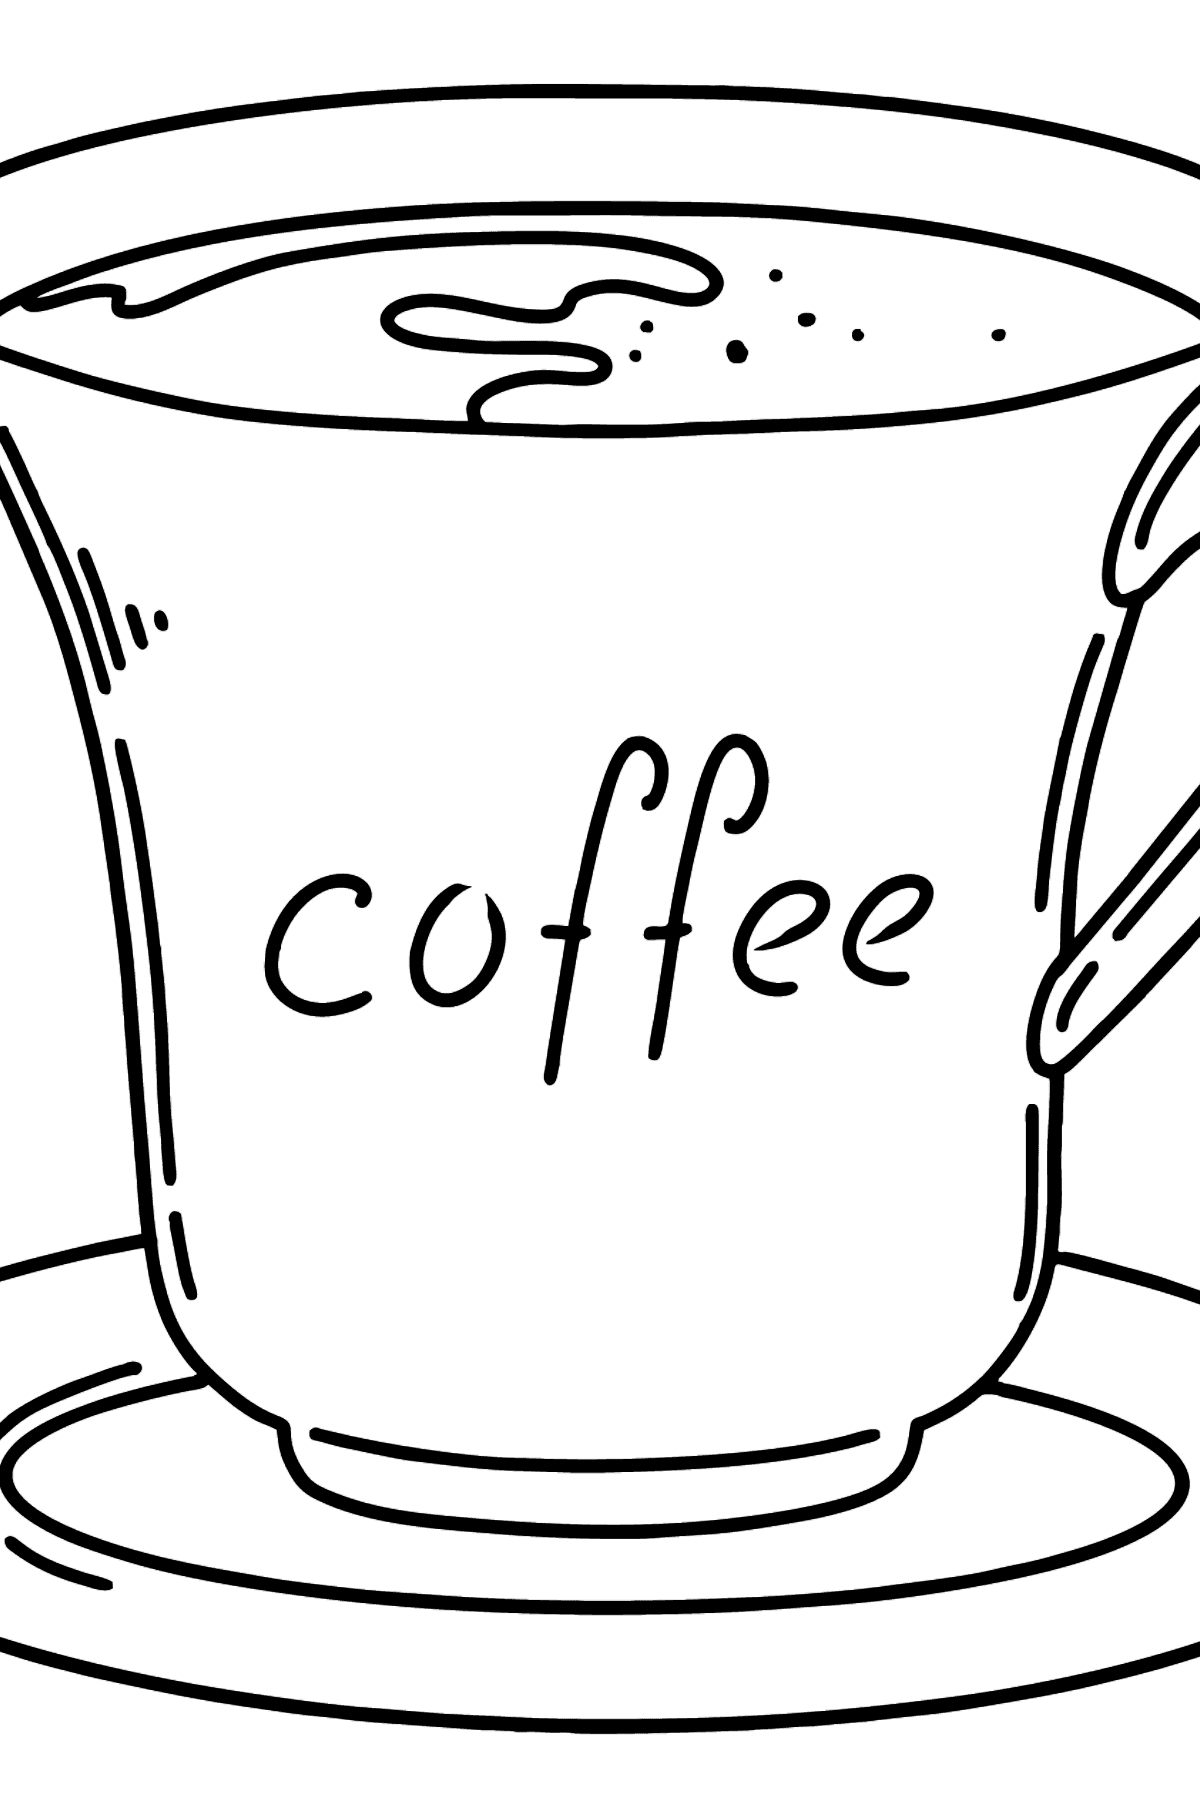 Coffee coloring page - Coloring Pages for Kids